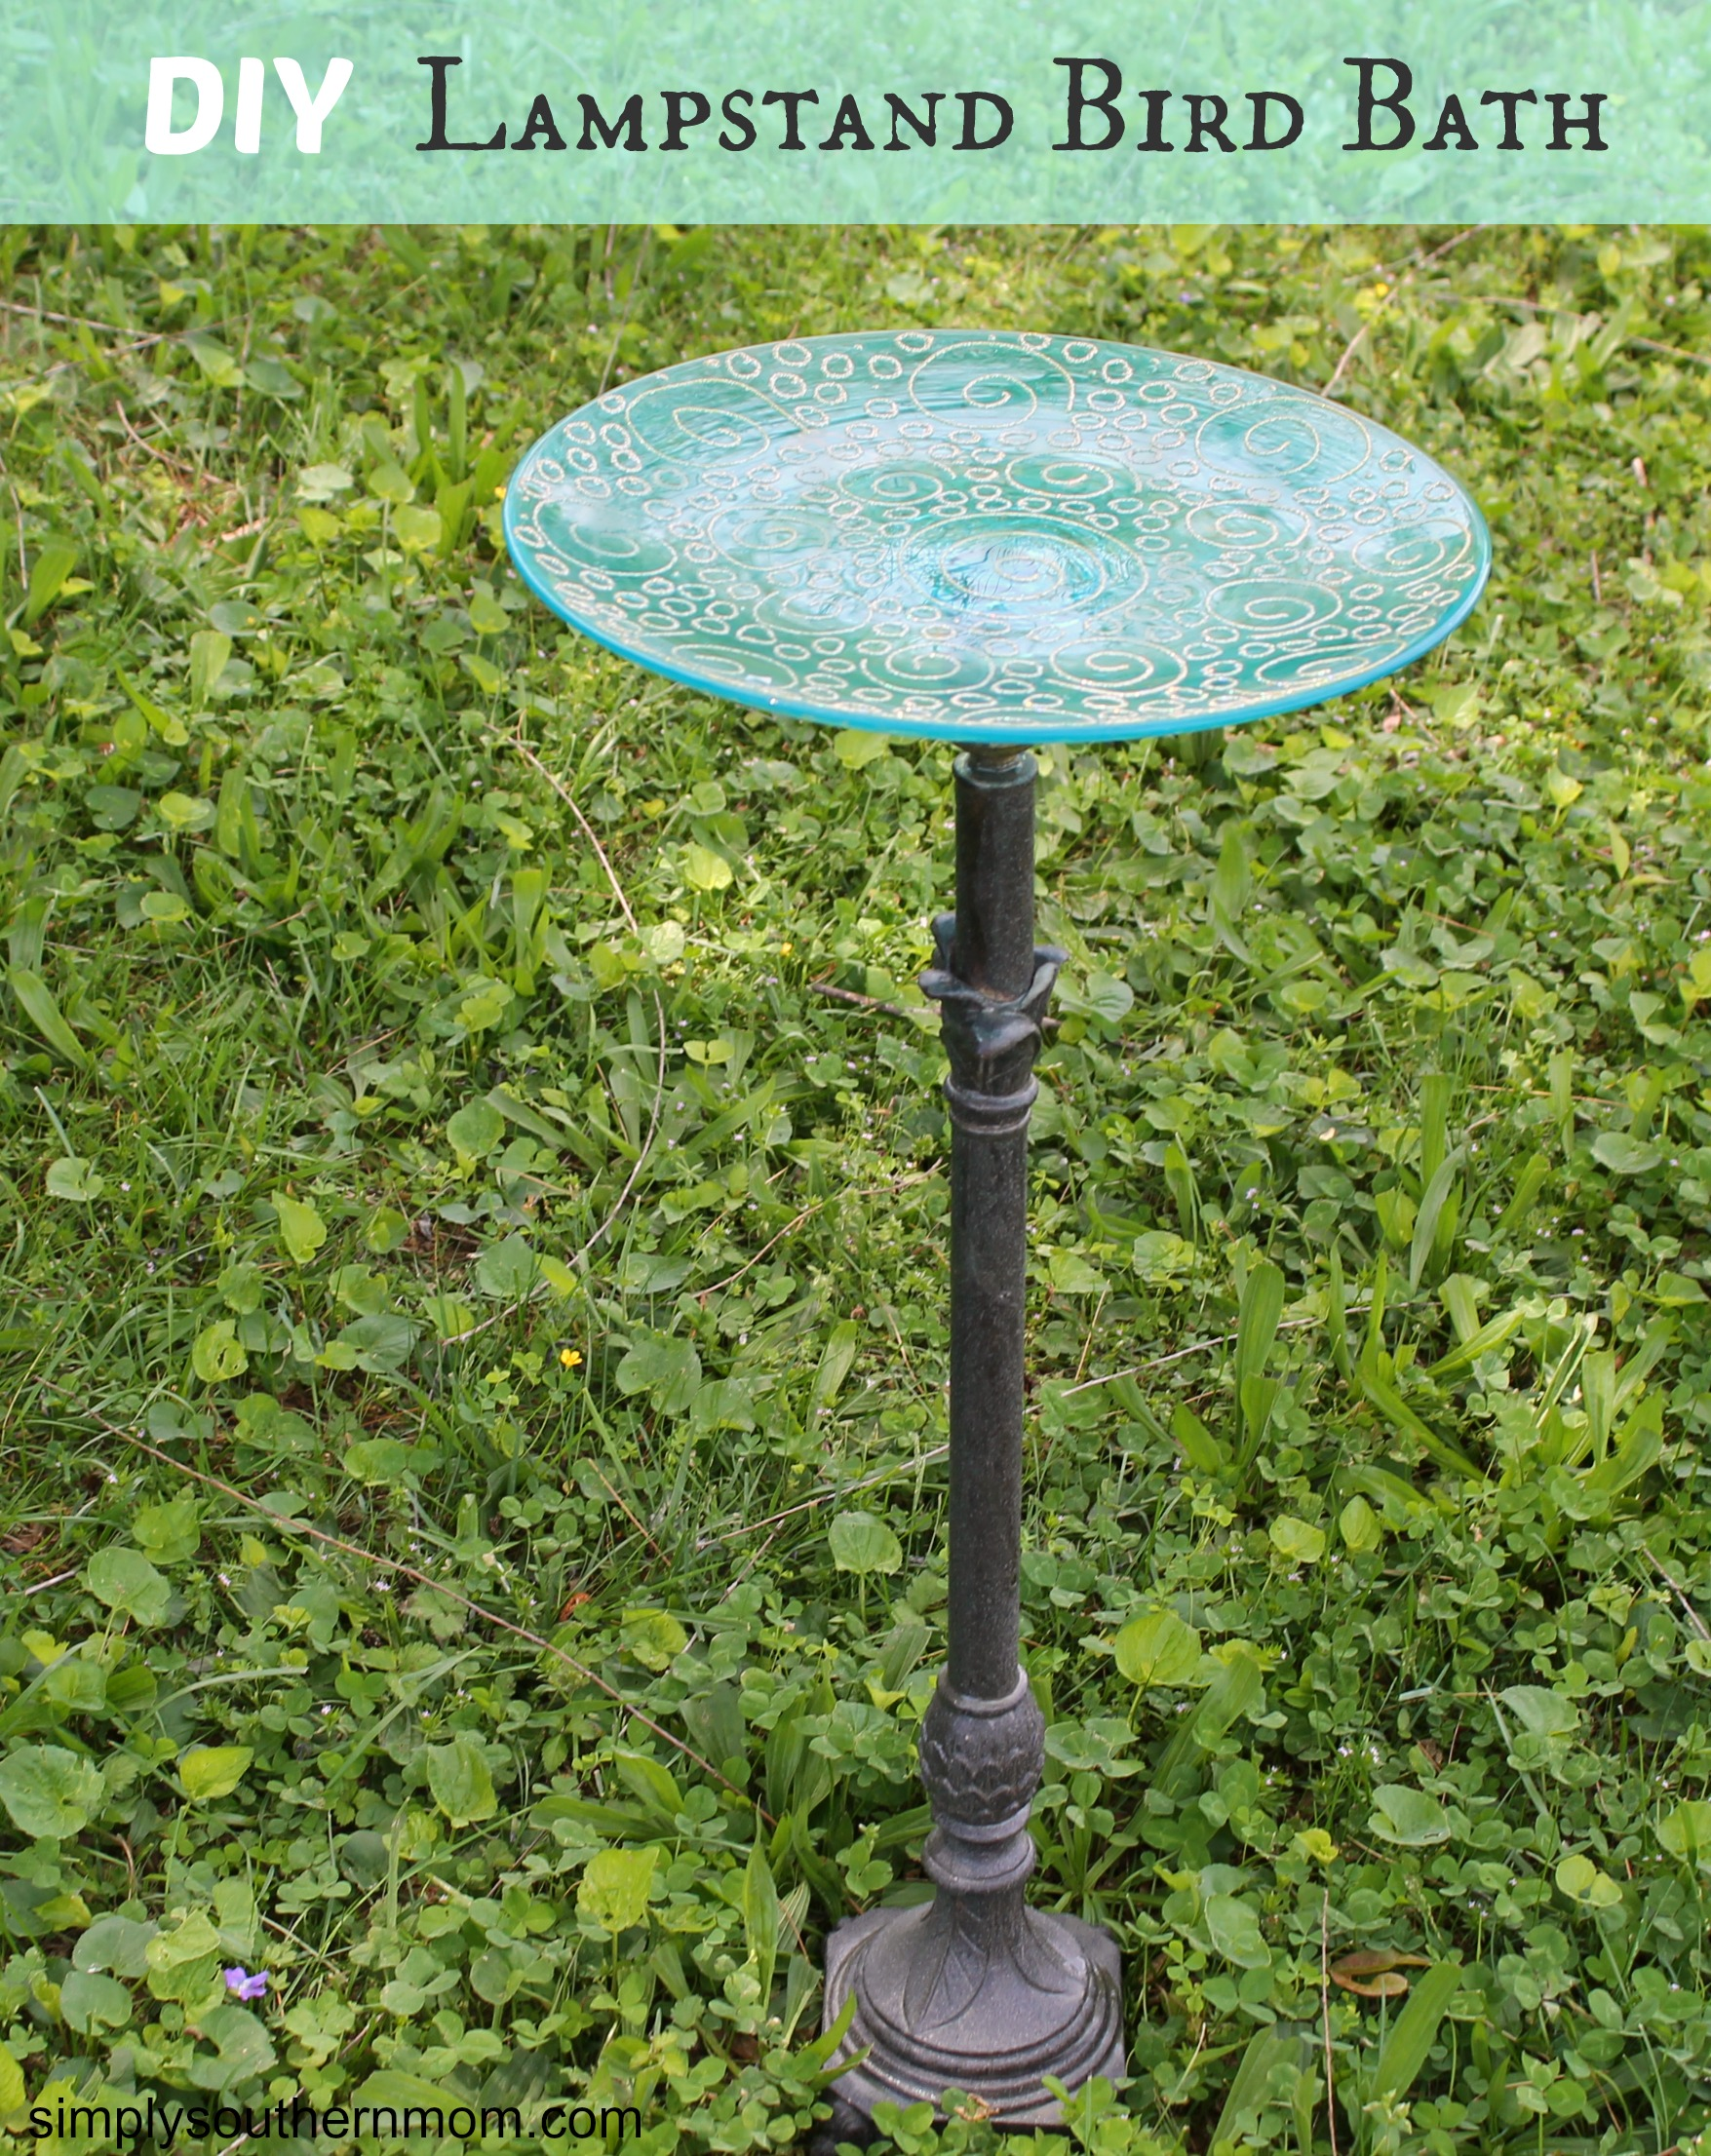 DIY Bird Bath (Made From a Lampstand!) - Simply Southern Mom